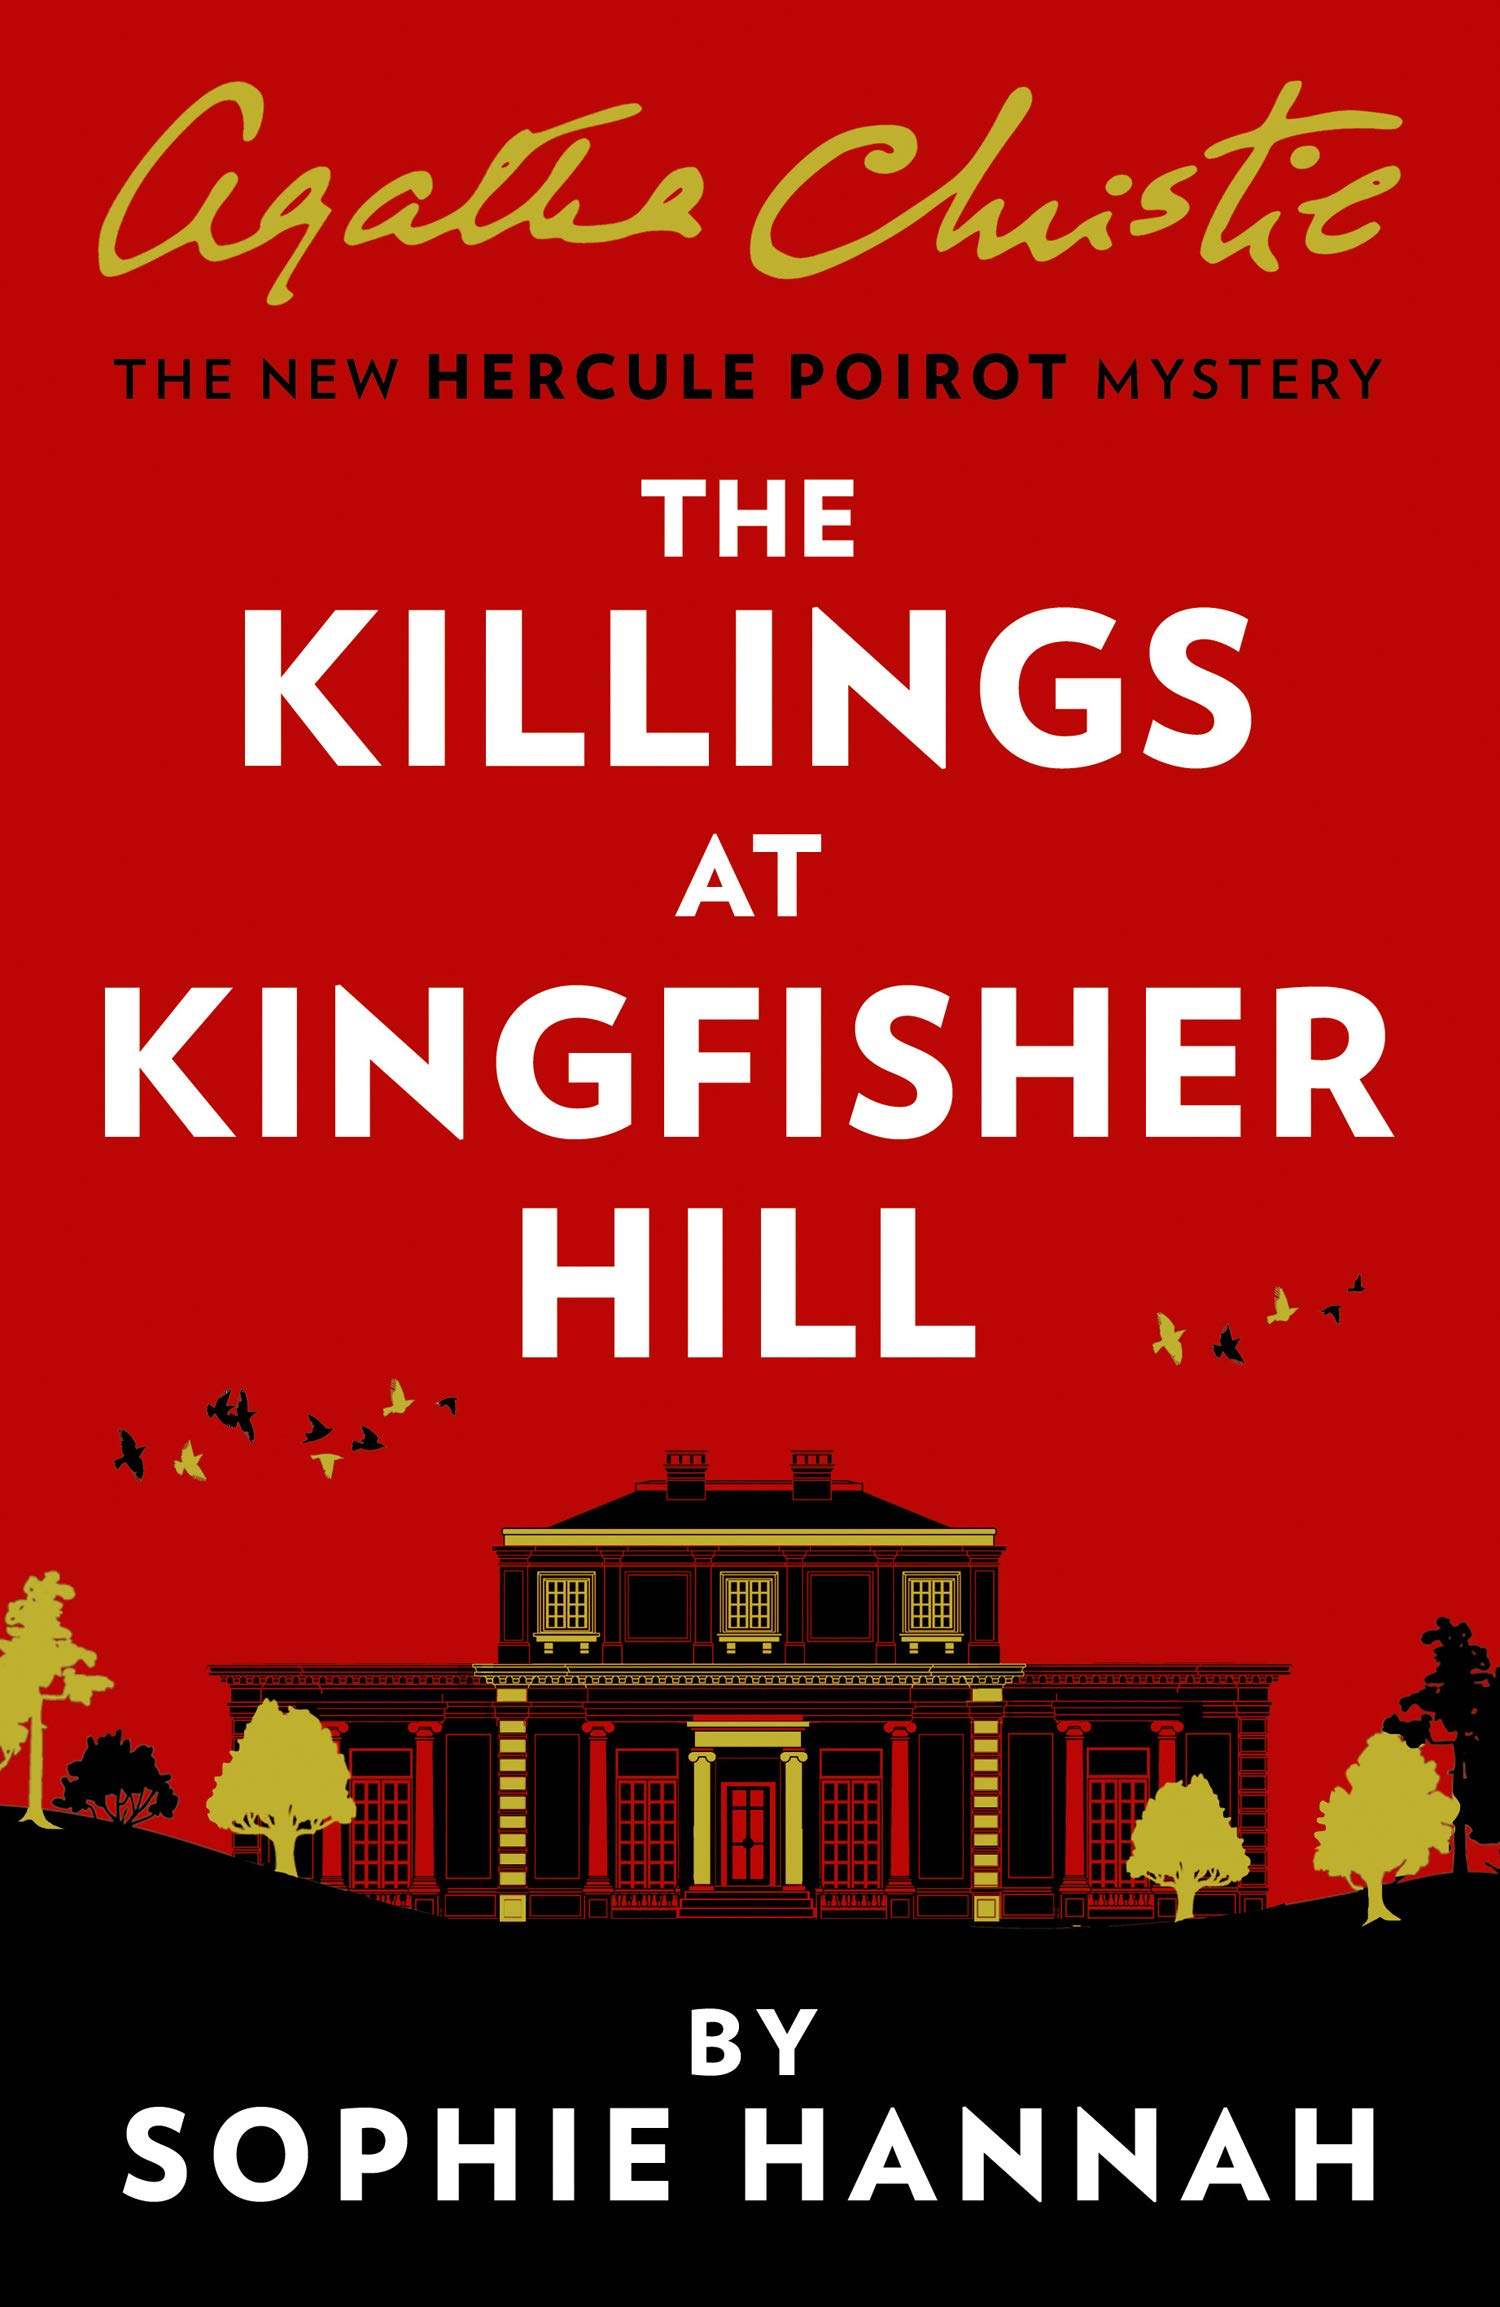 The Killings at Kingfisher Hill (New Hercule Poirot Mysteries, #4)